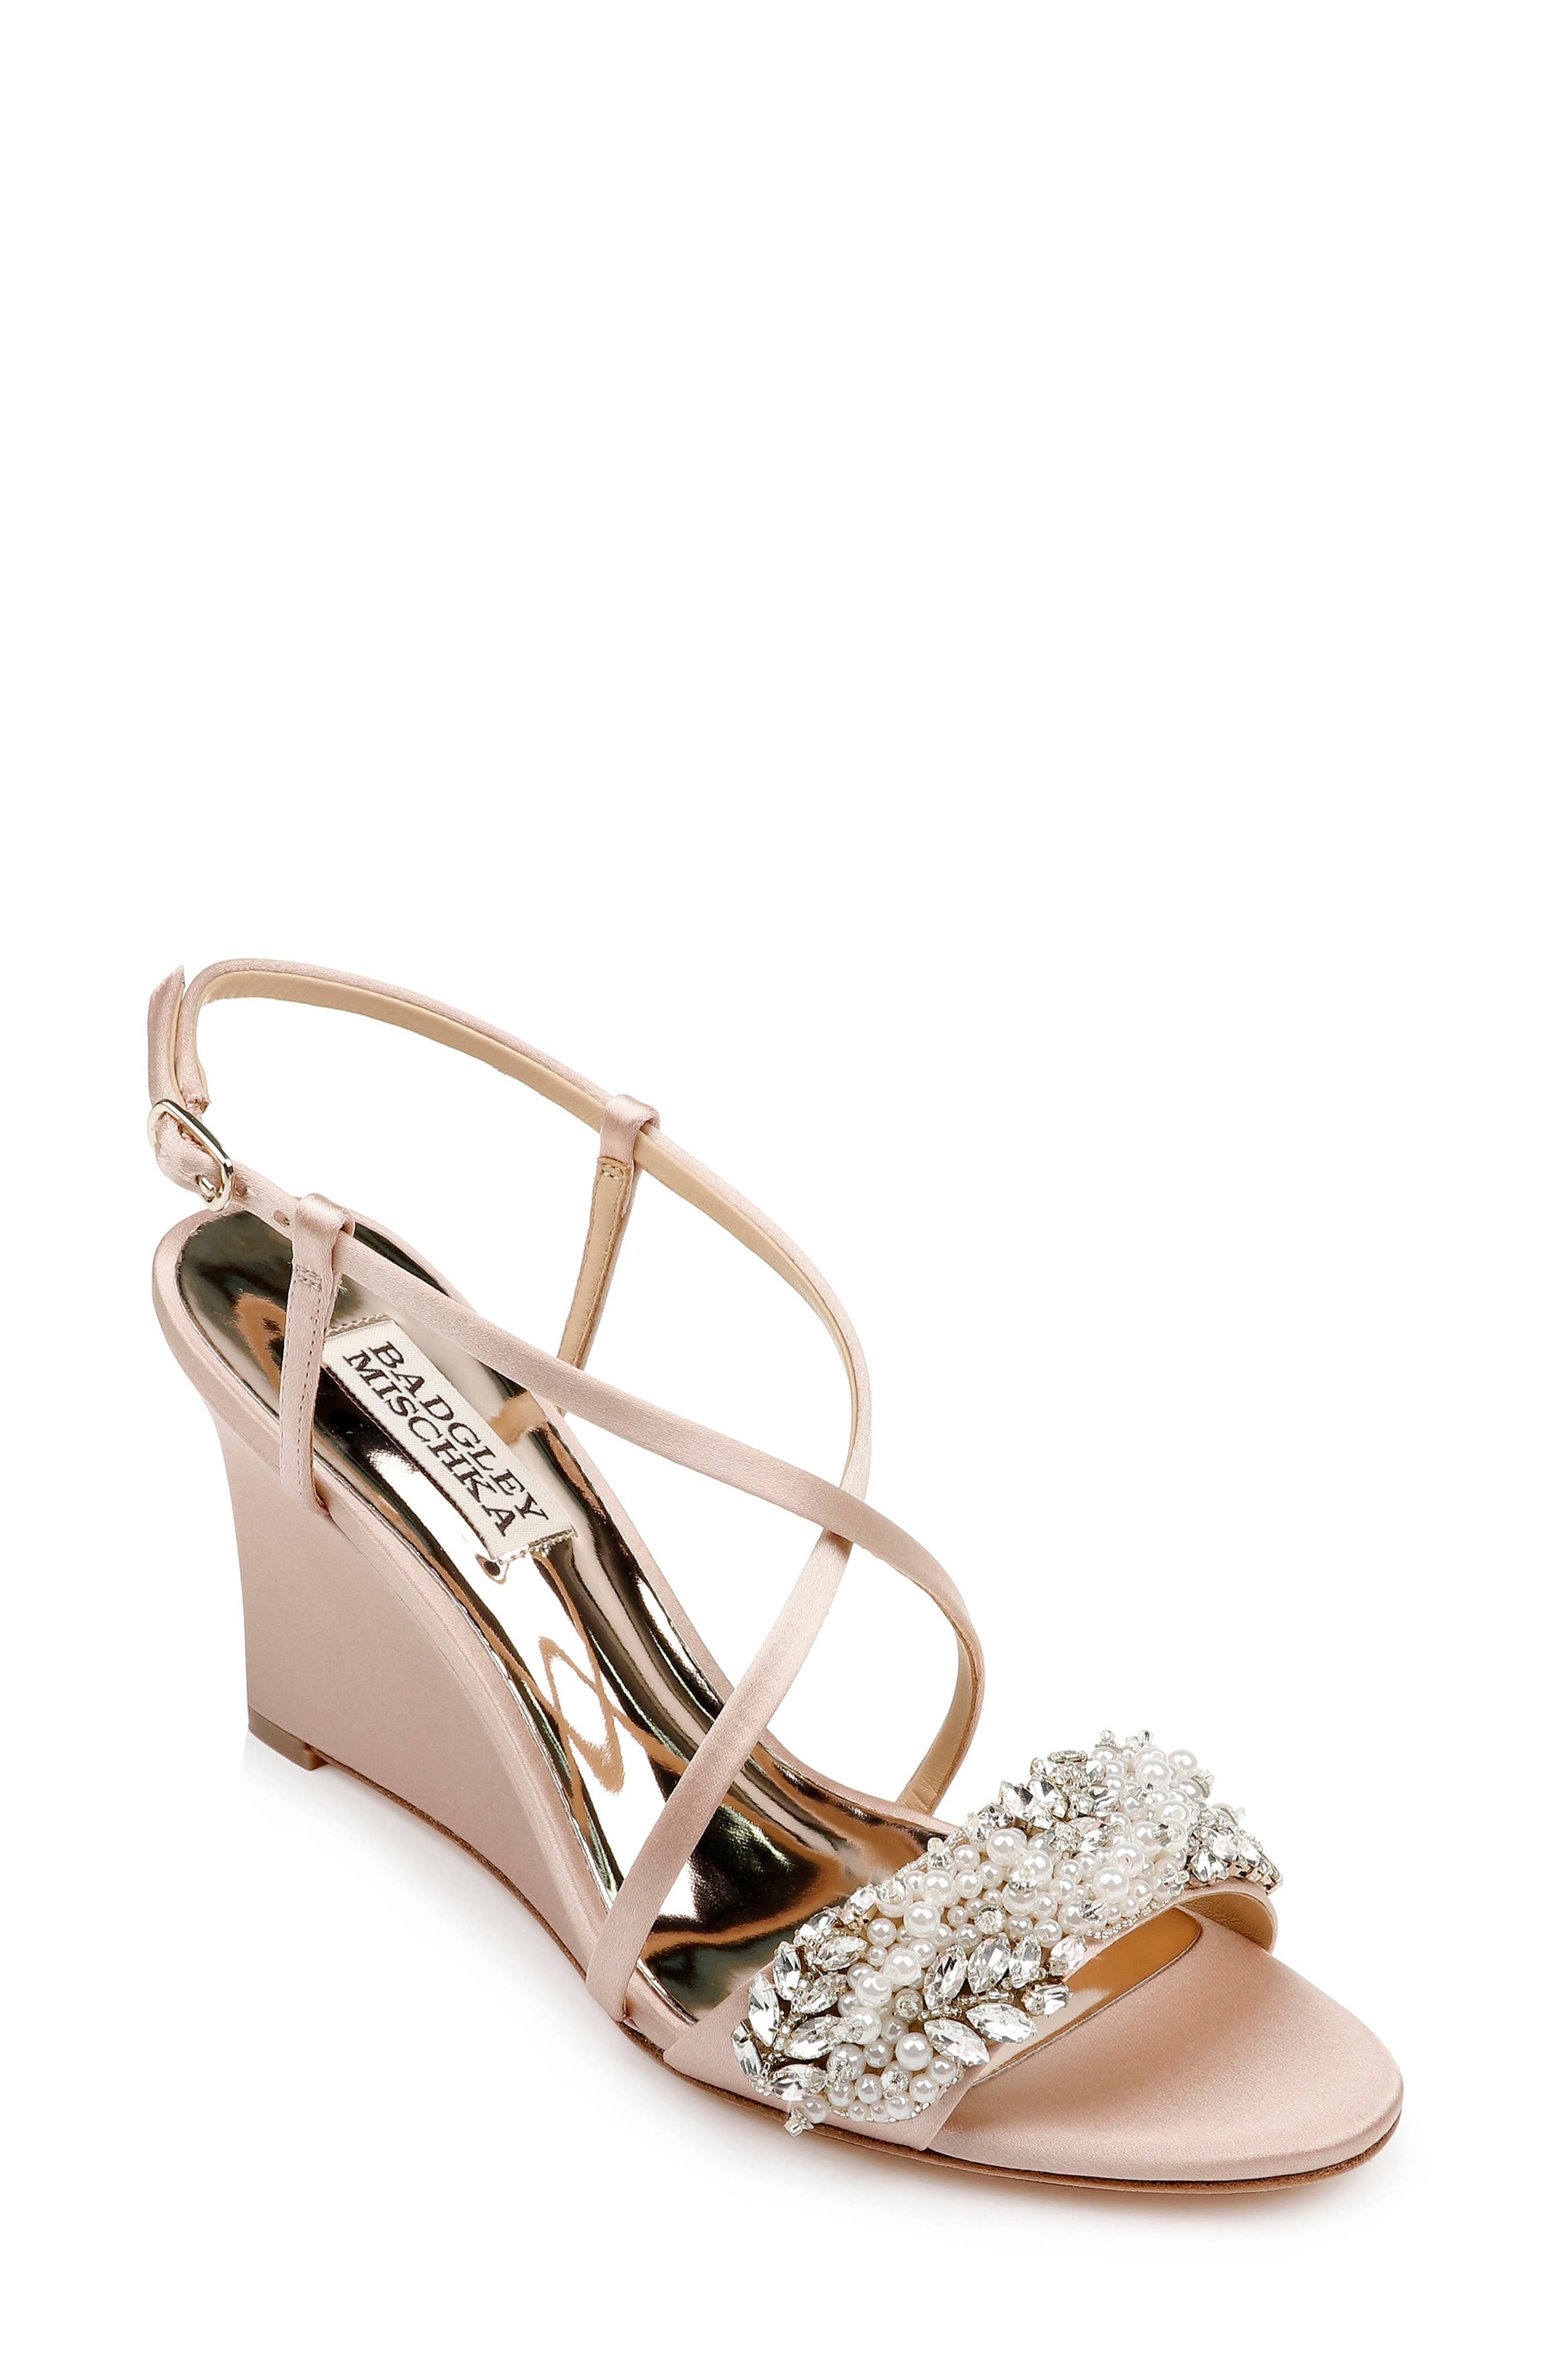 Leaf-shaped crystals and lustrous imitation pearls crown the toe strap of a pretty party sandal lifted by a curved wedge. Style Name: Badgley Mischka Clarisa Embellished Wedge Sandal (Women). Style Number: 5948991. Available in stores.